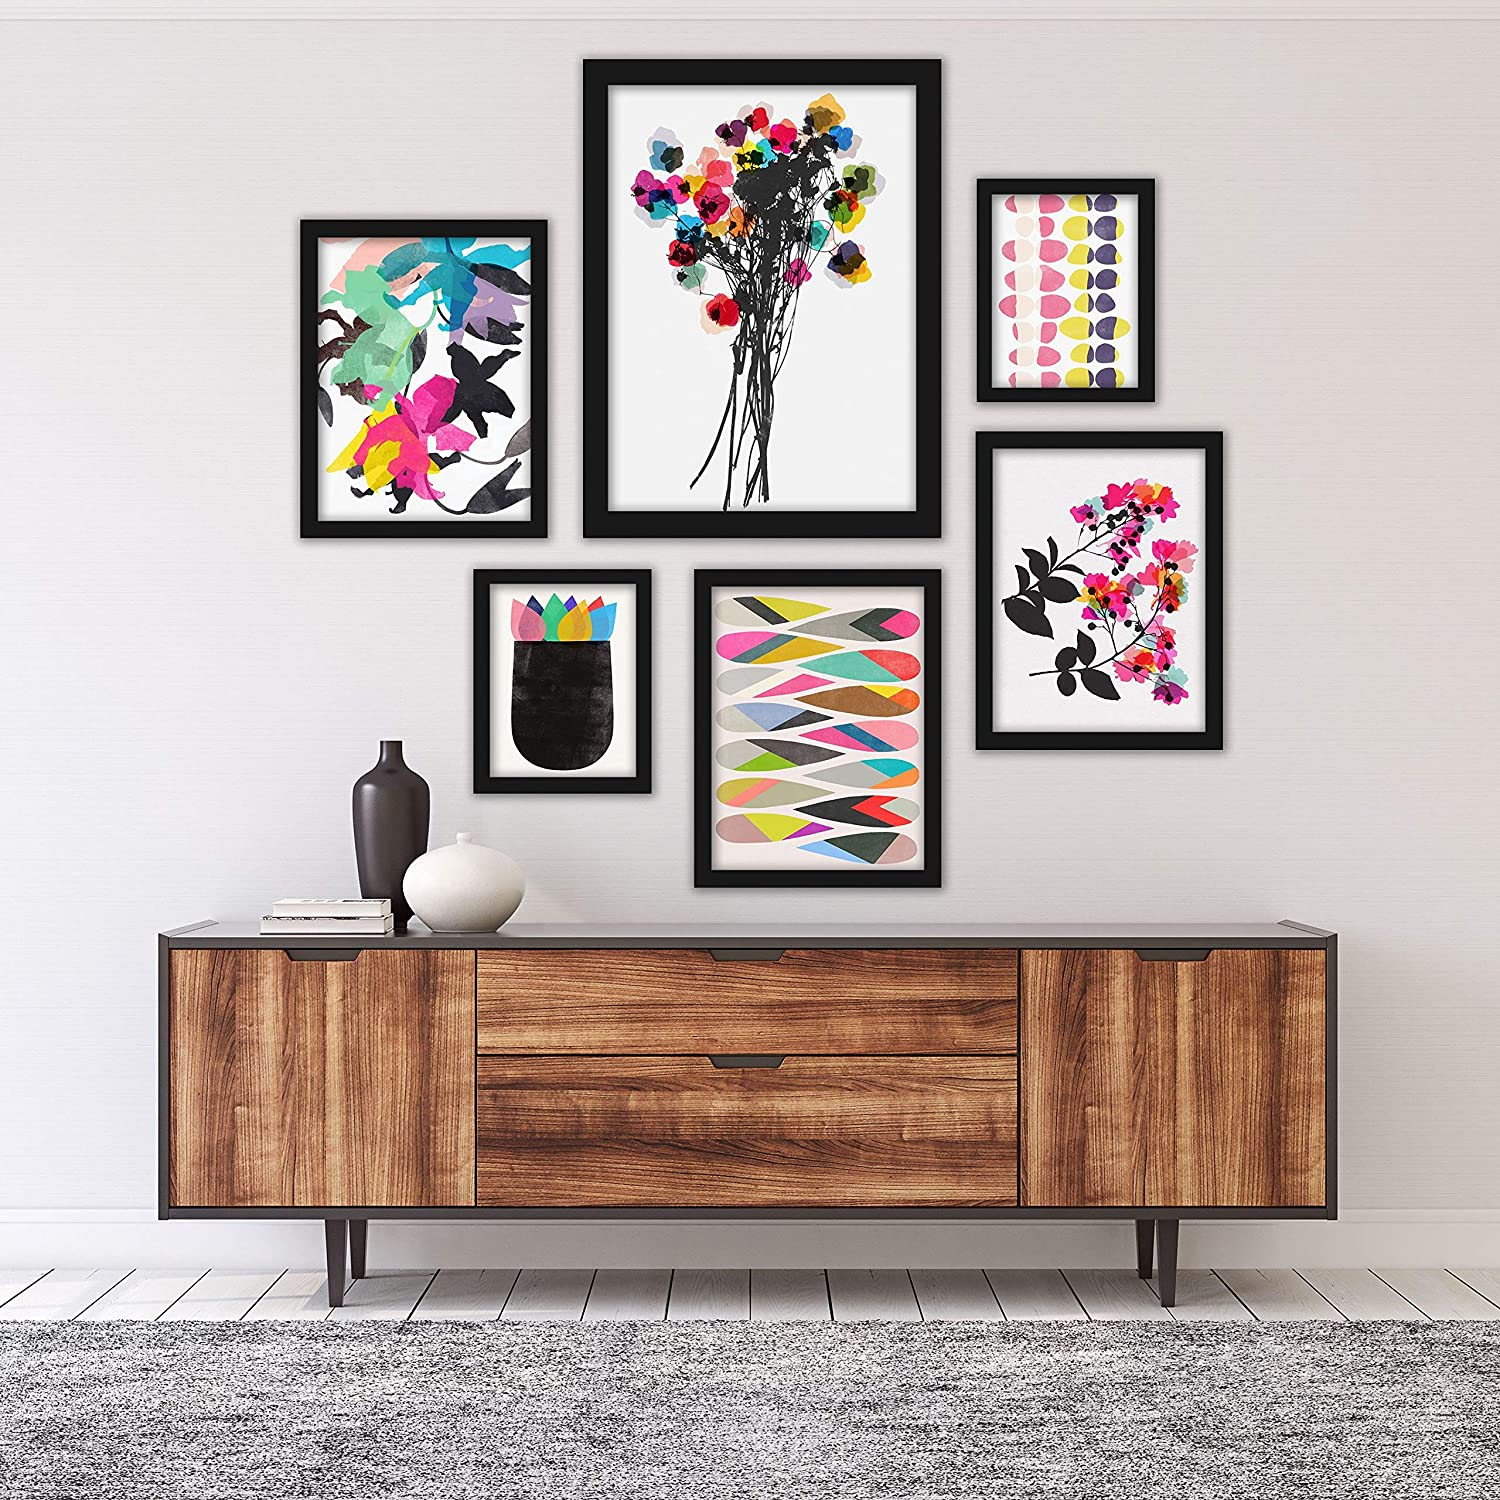 Amazon Com Americanflat Framed Gallery Wall Art Set 6 Piece Colorful Abstract Contemporary Florals Black Framed Art Home Kitchen